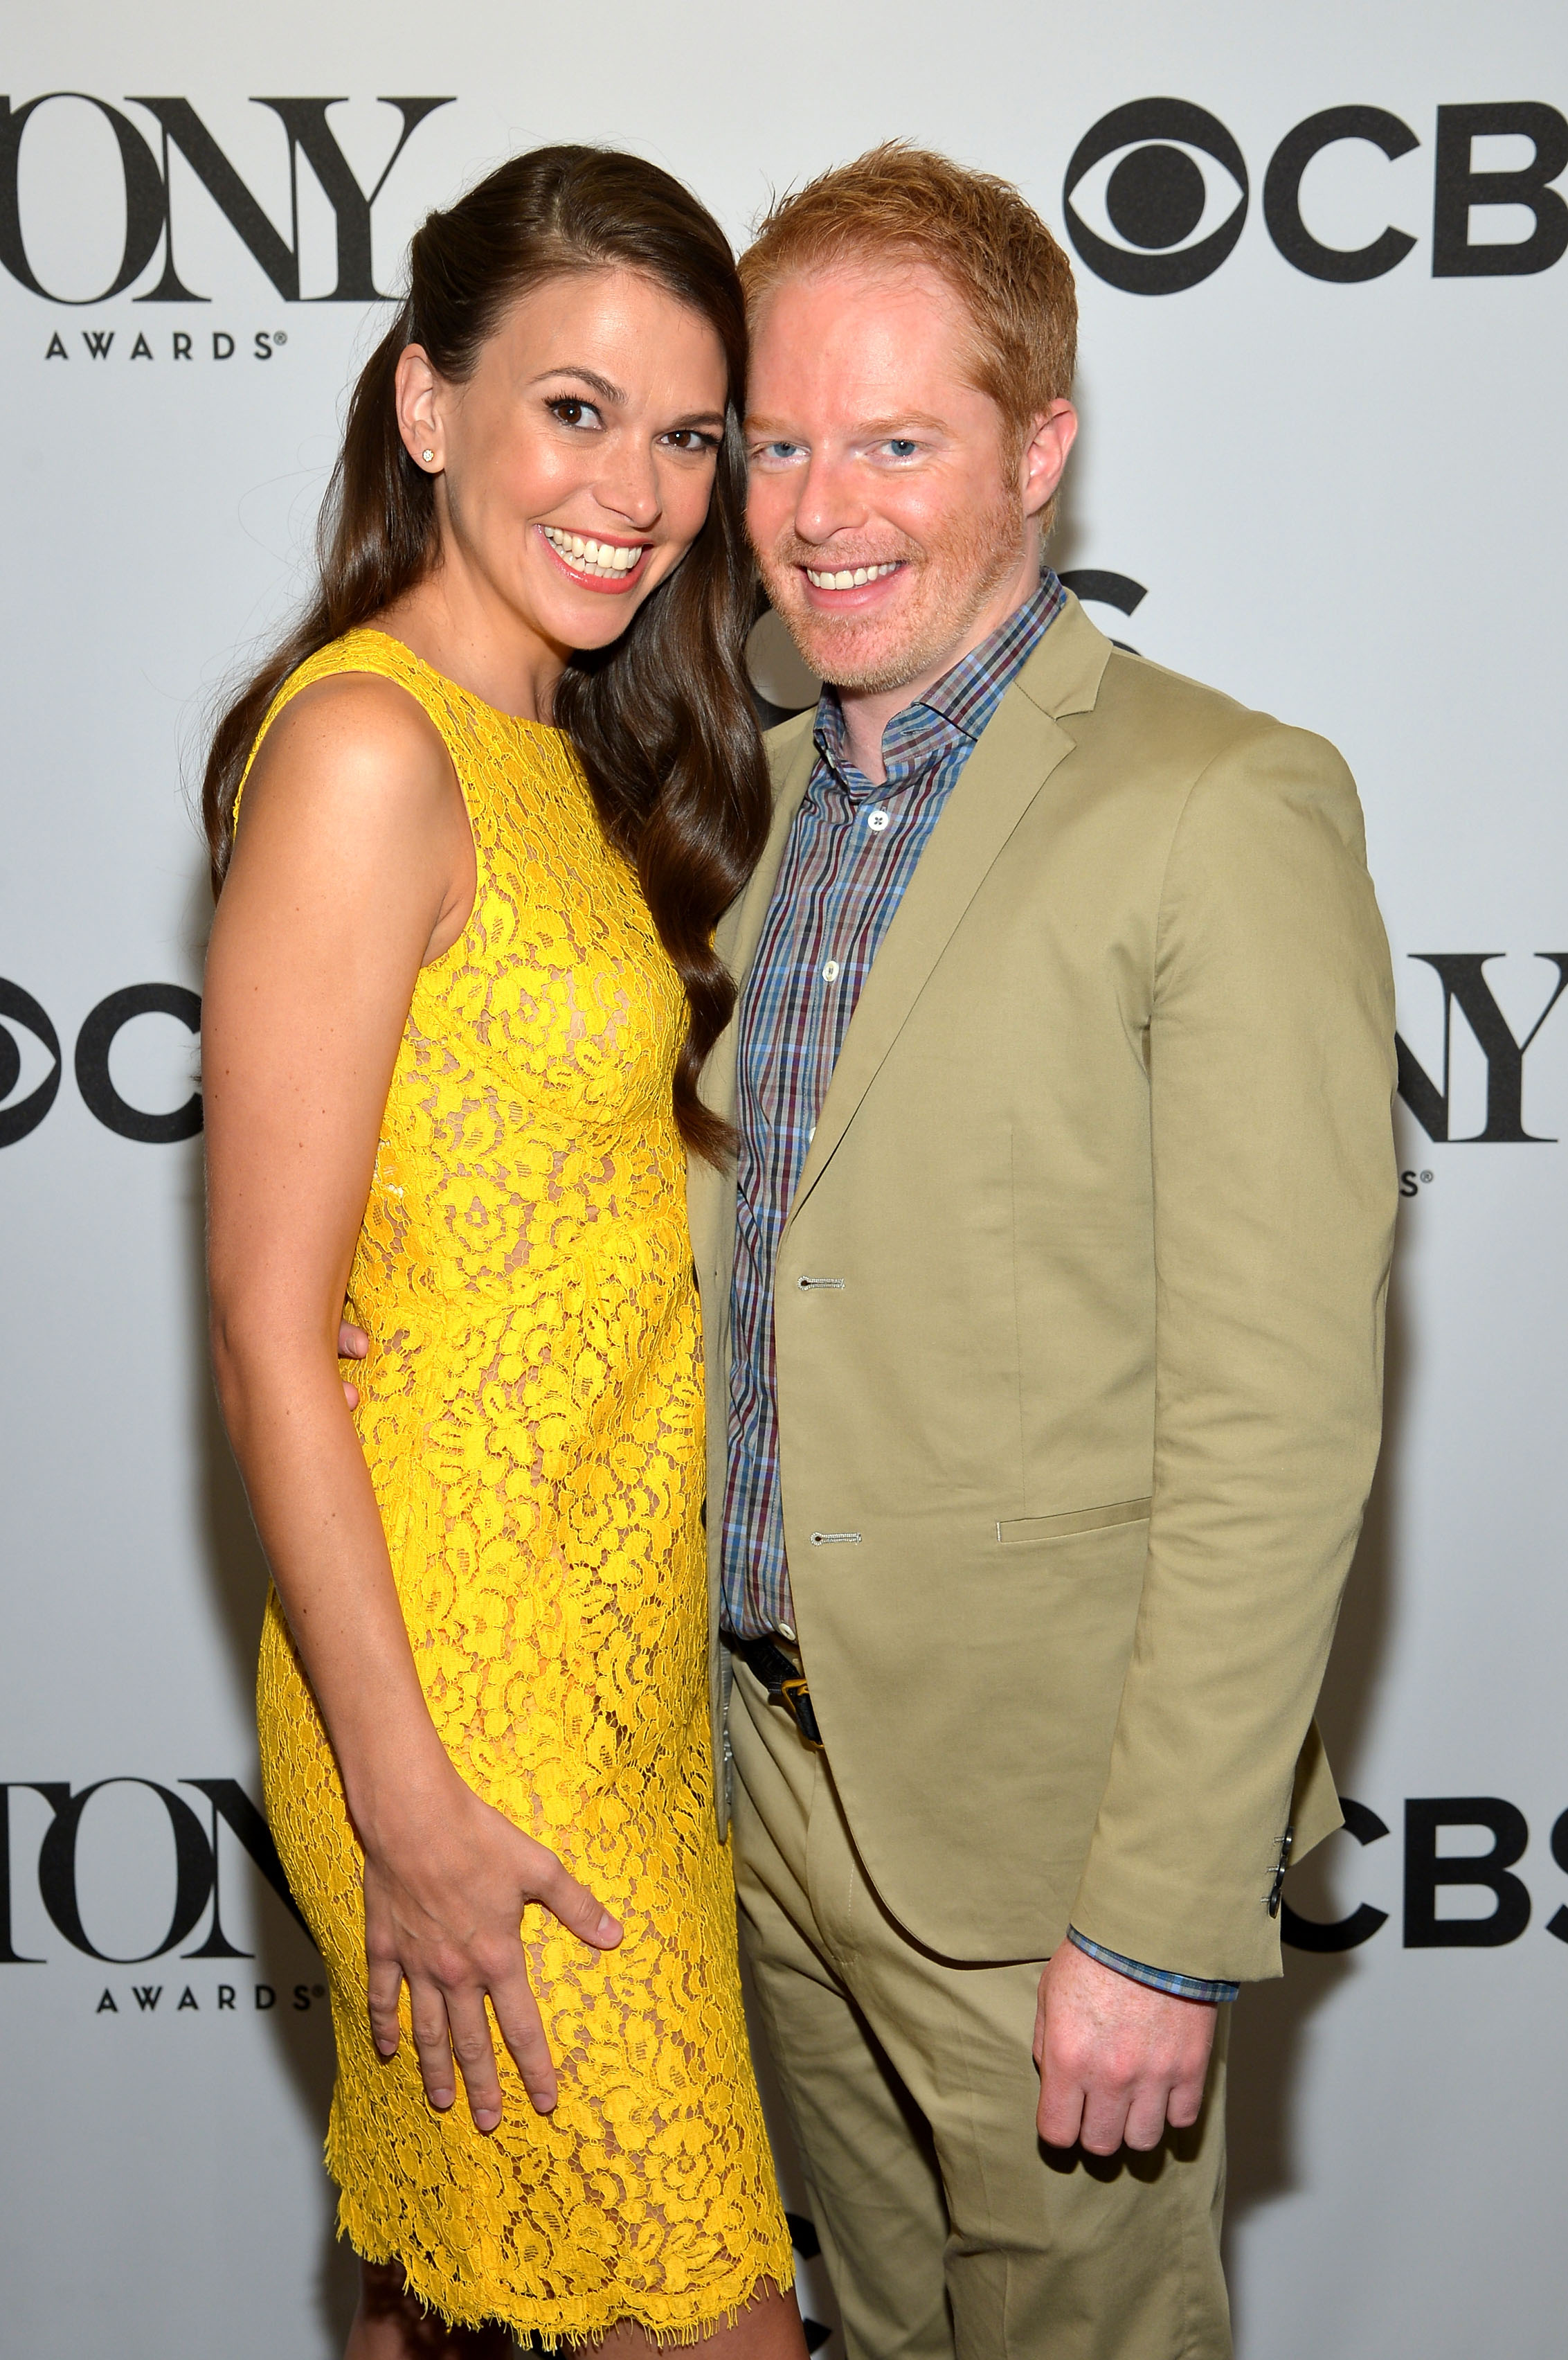 Sutton Foster and Jesse Tyler Ferguson